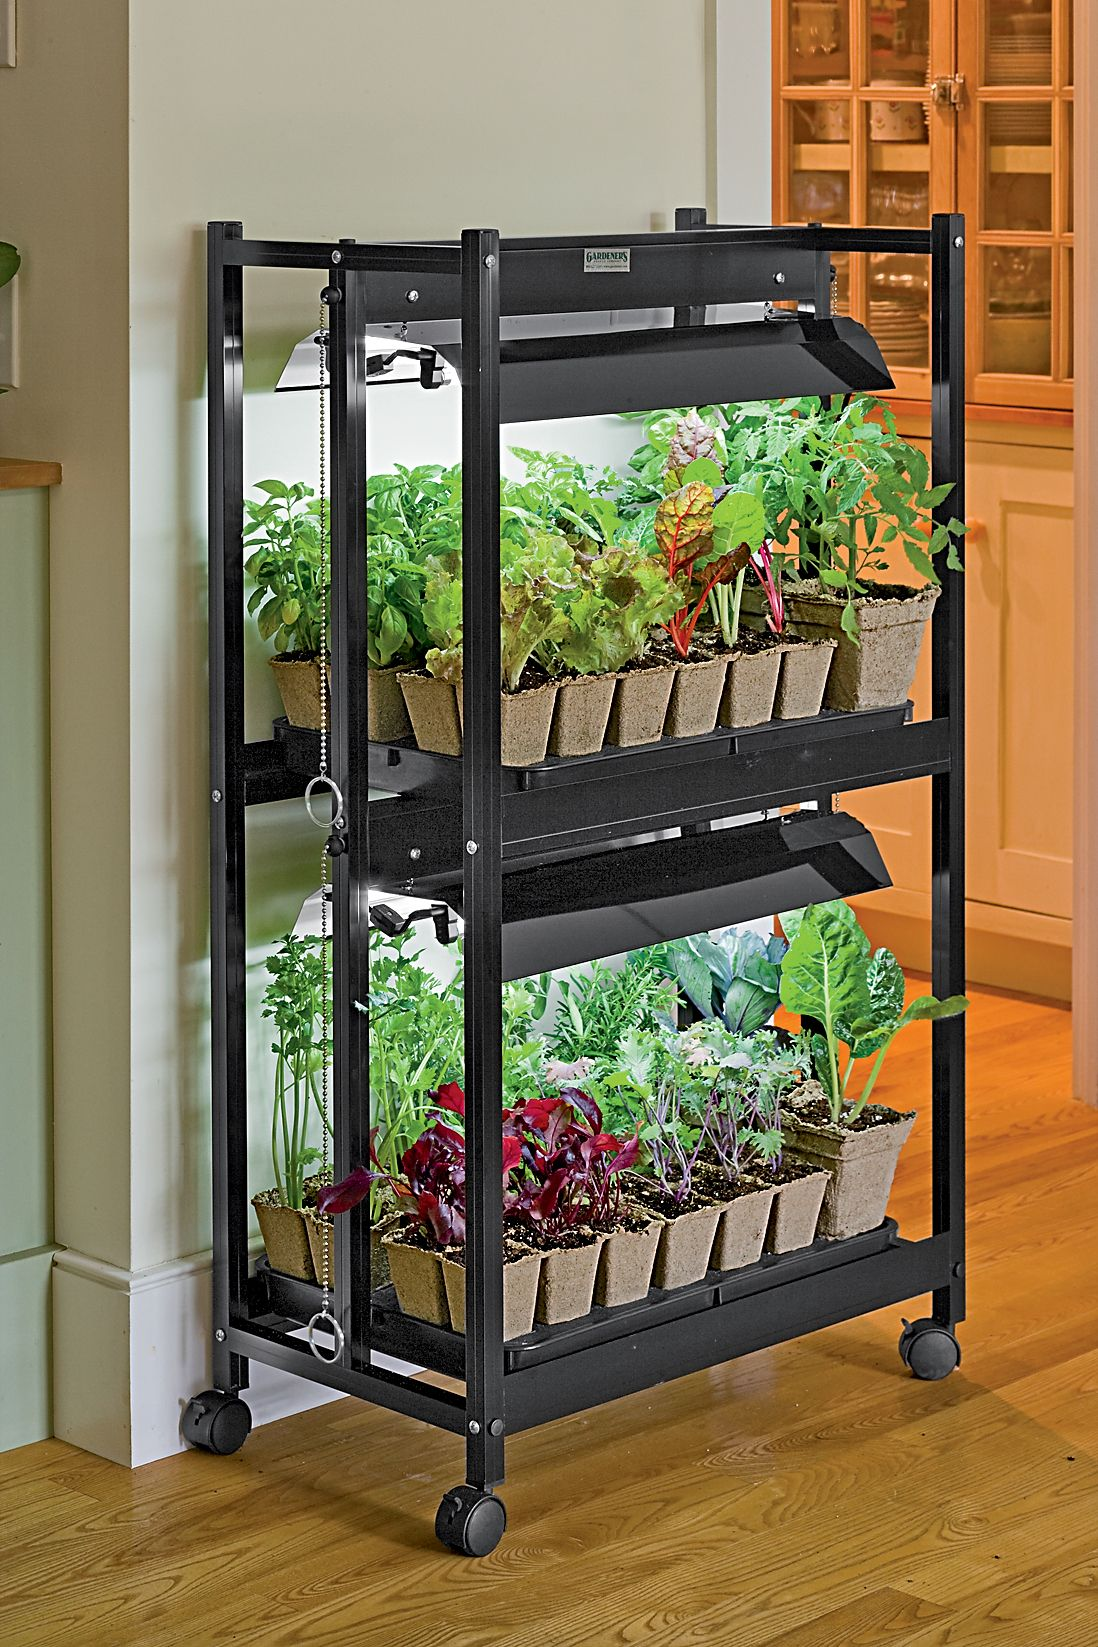 Get Started Growing 5 Easy Small Vegetable Garden Ideas